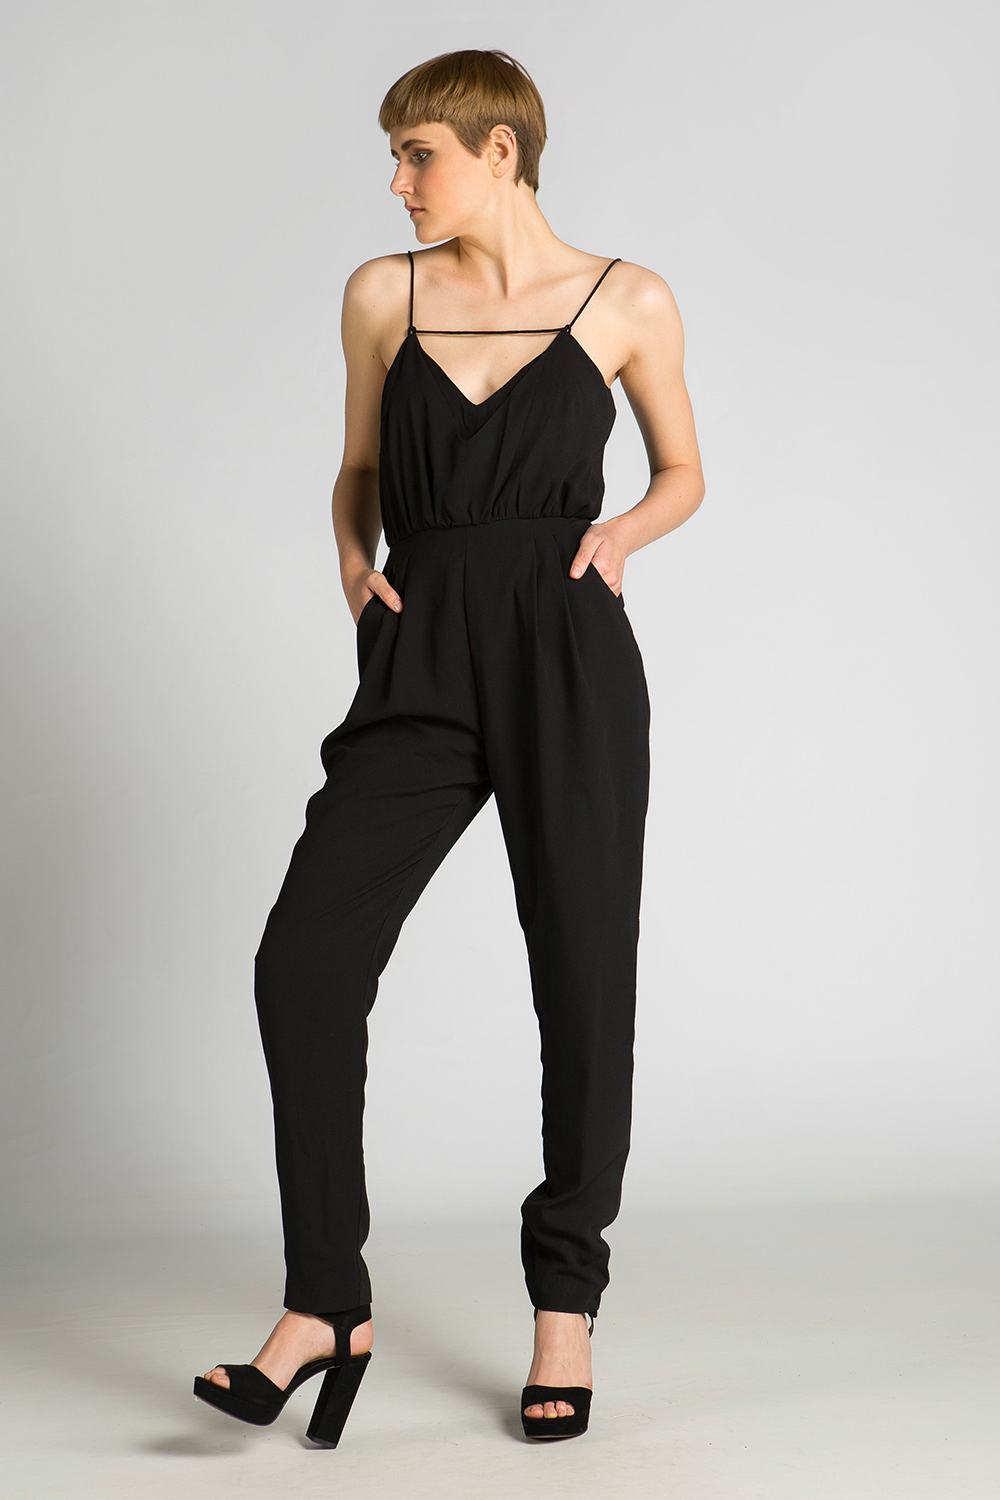 37e7e6c7587b Finders Keepers The Someday Jumpsuit Black